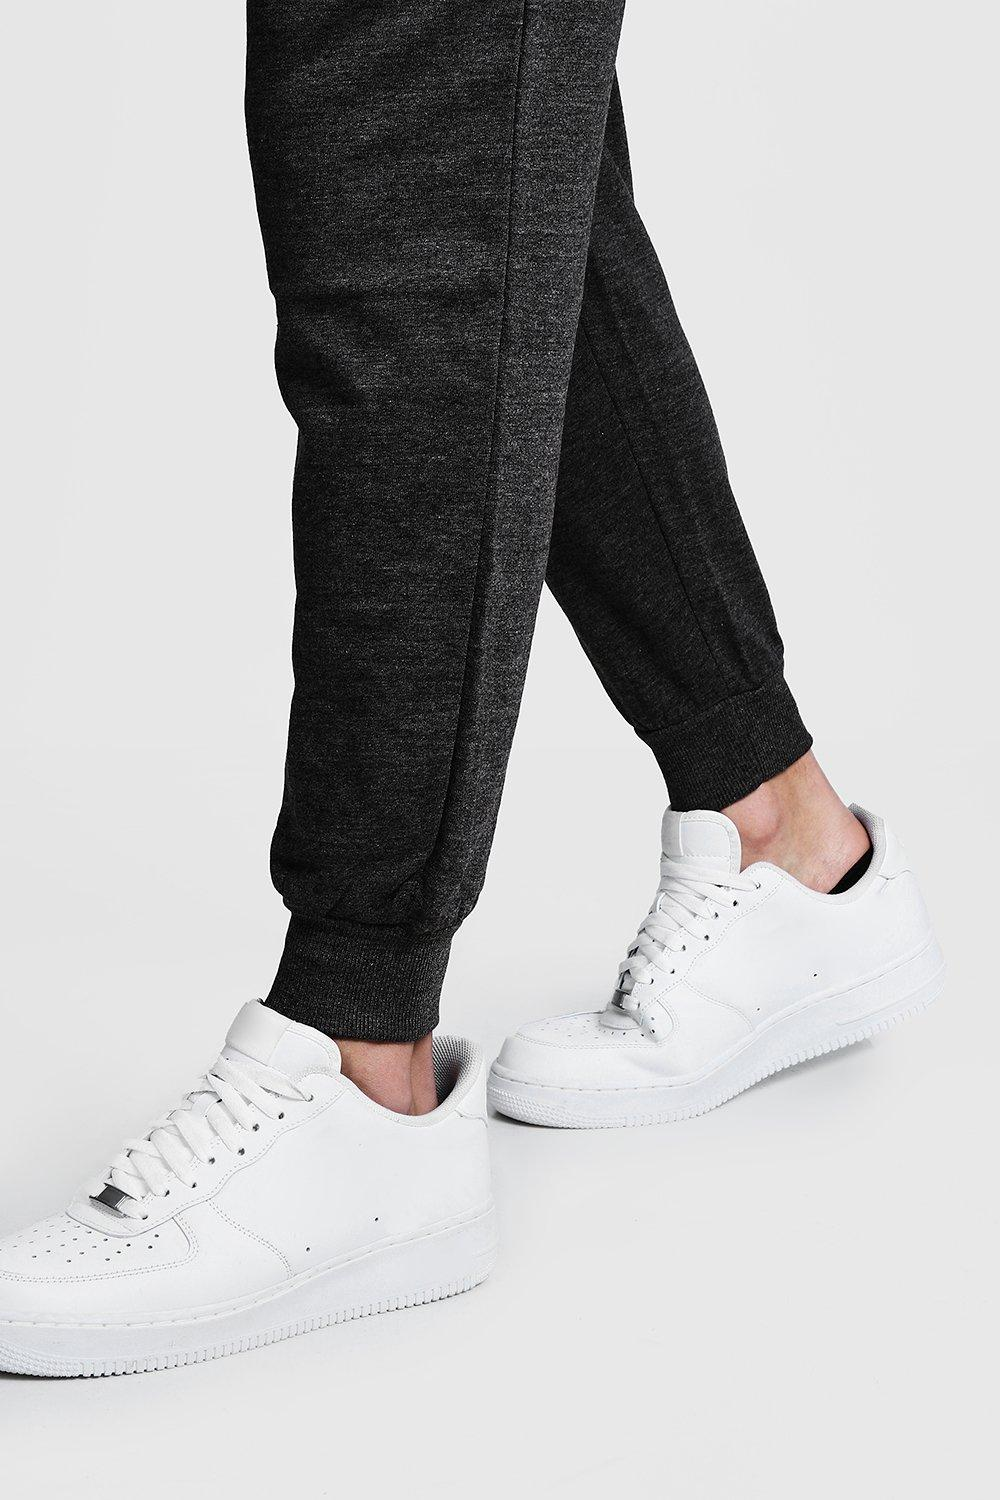 Joggers Fit charcoal Skinny Joggers Basic charcoal Skinny Skinny Joggers Fit charcoal Basic Skinny Fit Basic AtBtq